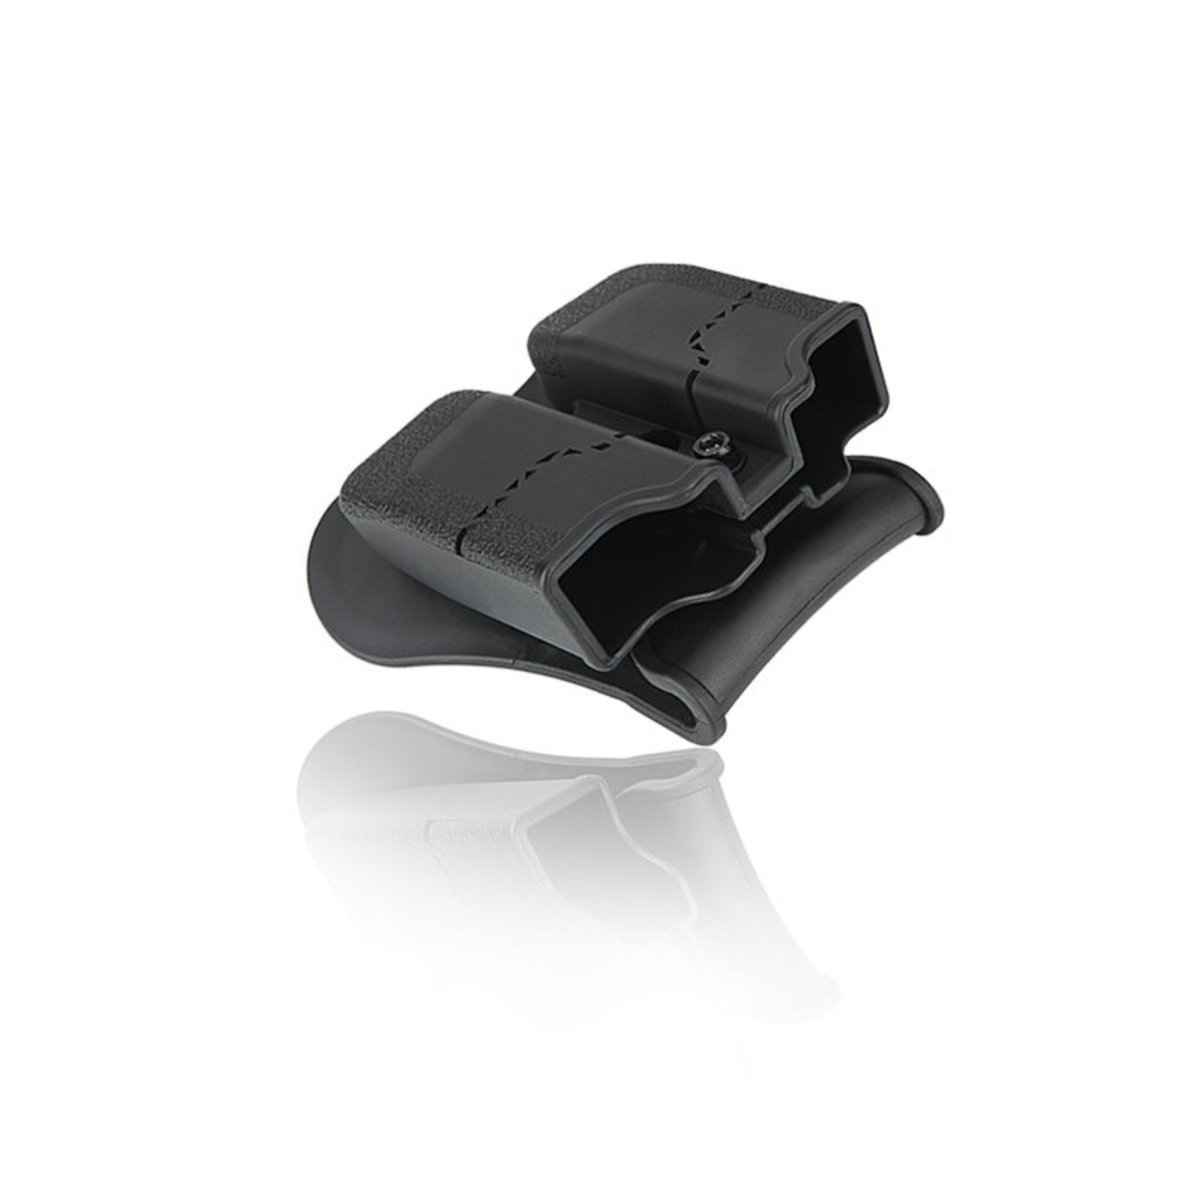 View larger image of Cytac Double Magazine Pouch - Fits Beretta, H&K, Ruger, S&W, Taurus, Sig Sauer, Jericho